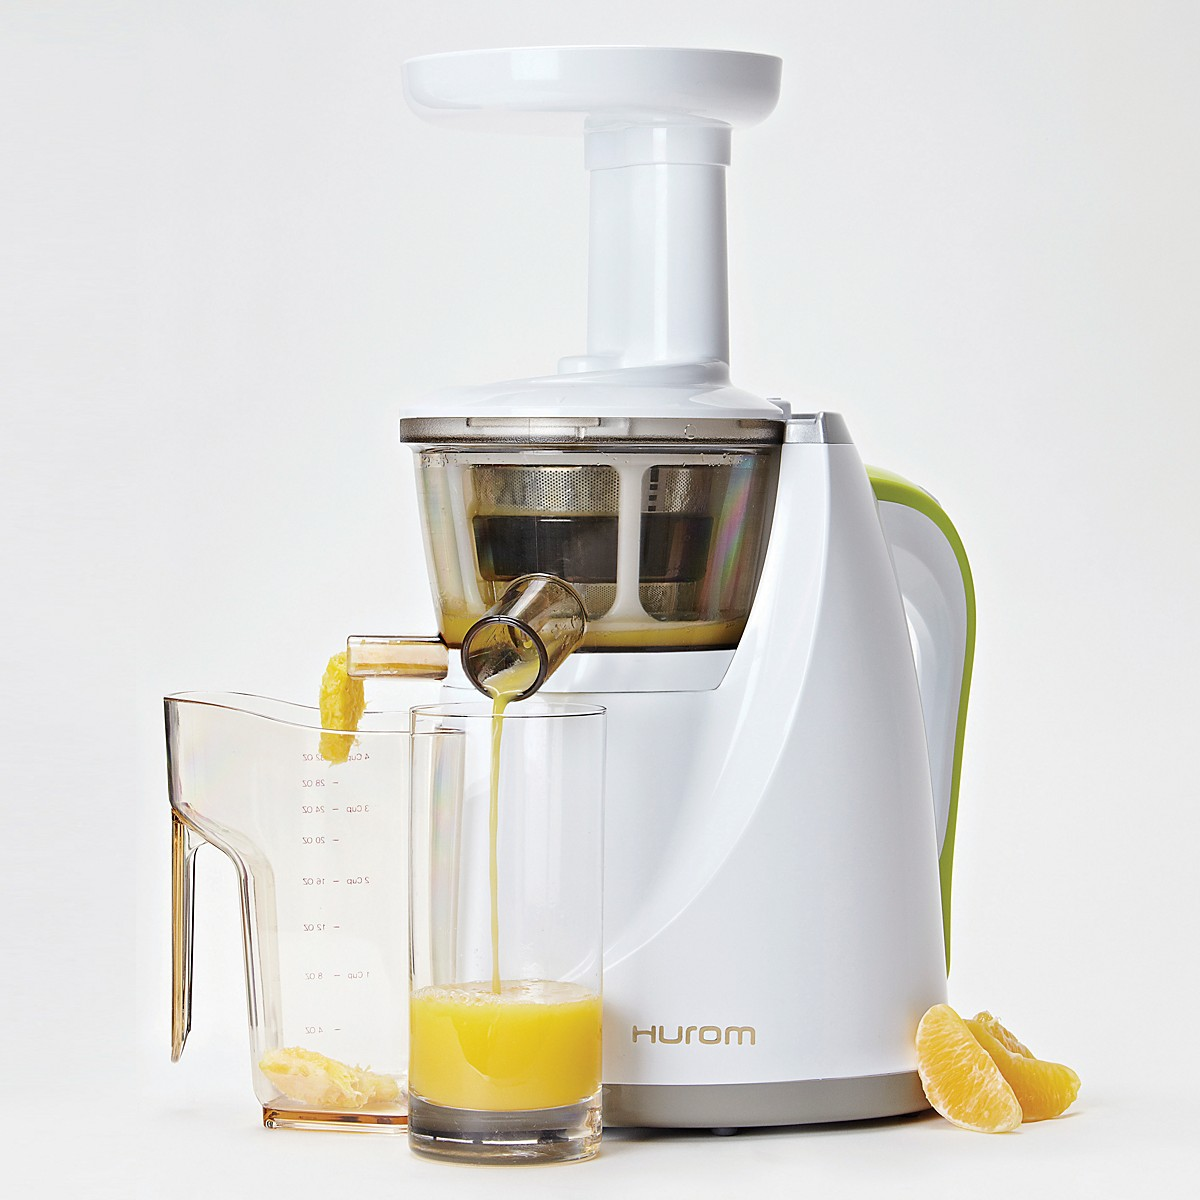 Hurom Juicer Slow Juicer : The Wish List 2014 Our favourite kitchen appliances for chefs and avid home cooks